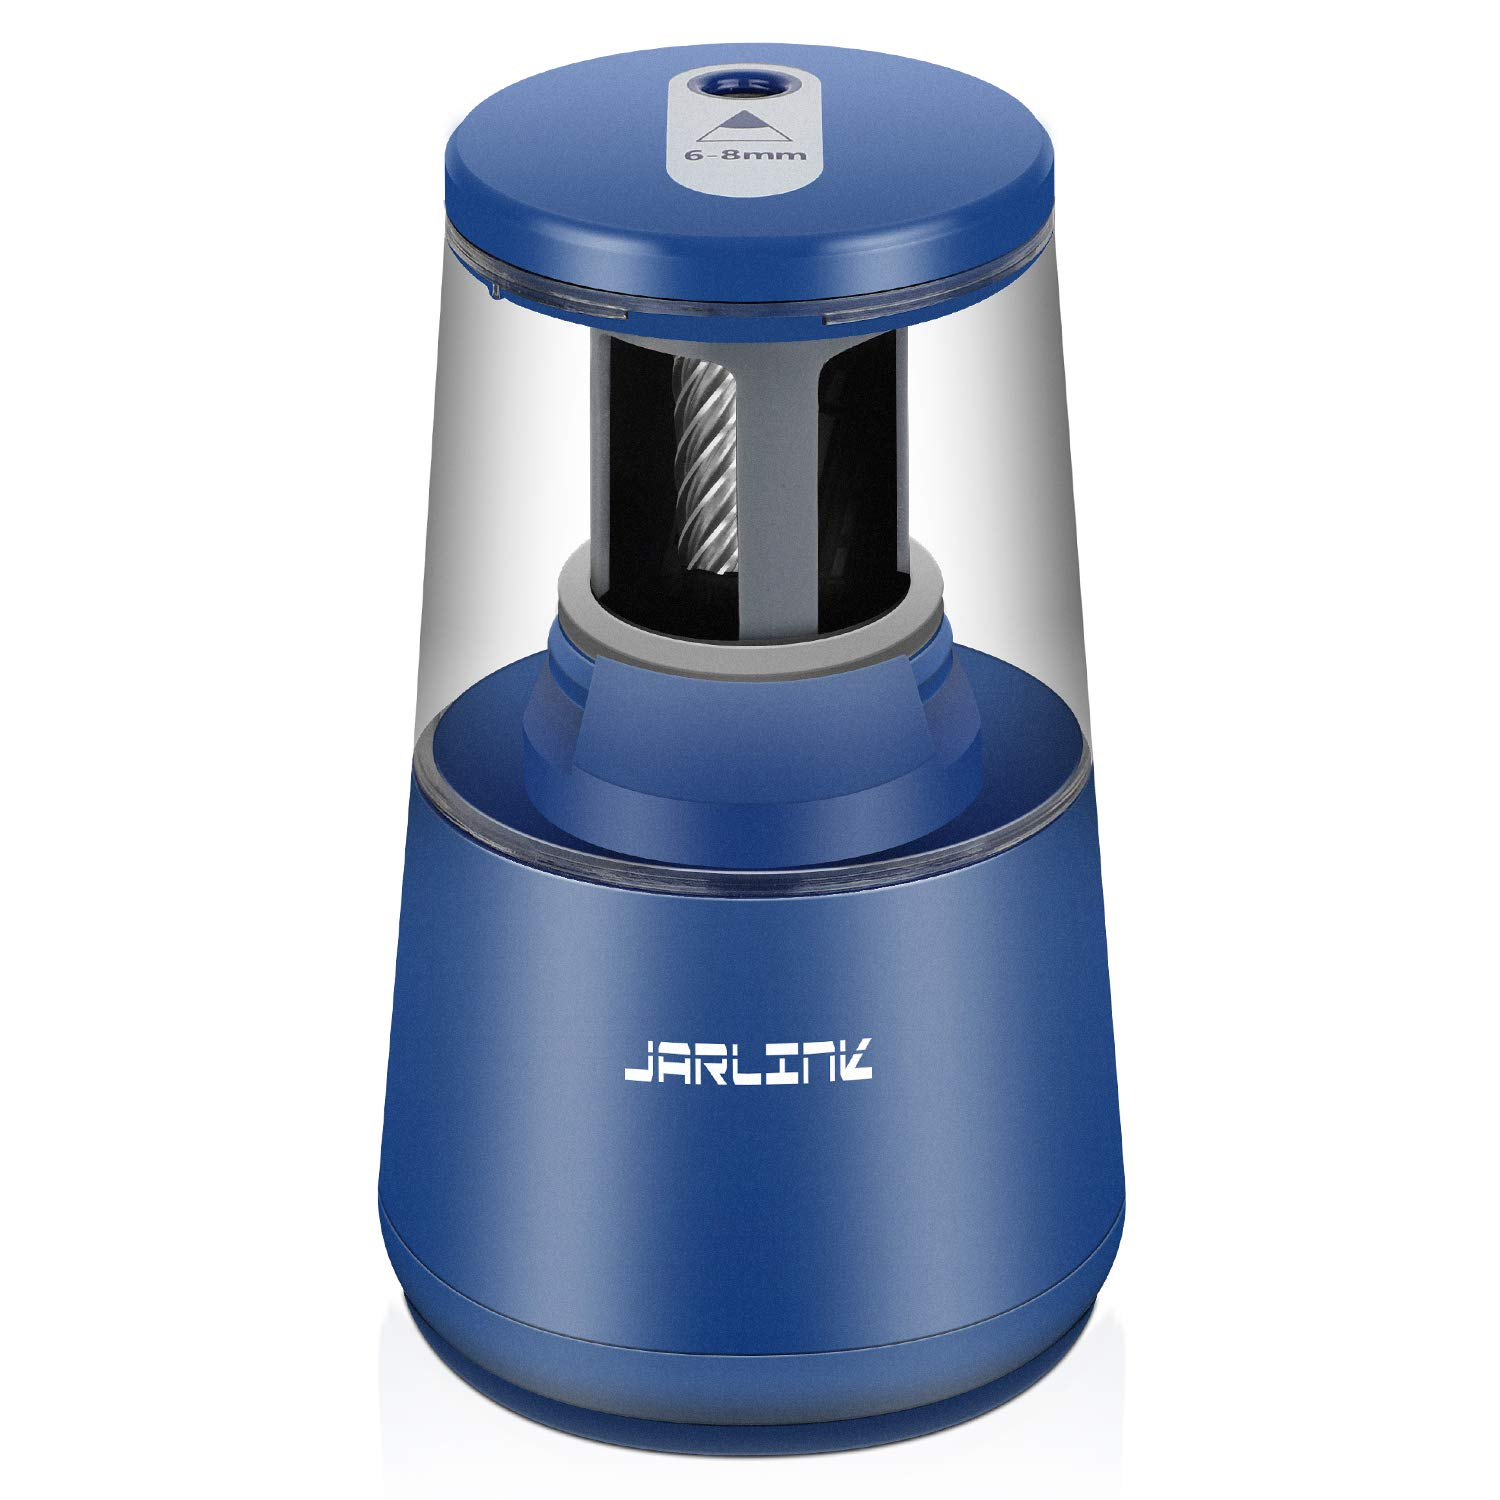 JARLINK Electric Pencil Sharpener, Heavy-Duty Helical Blade to Fast Sharpen, Auto Stop for No.2/Colored Pencils(6-8mm), USB/Battery Operated in School Classroom/Office/Home (Blue)